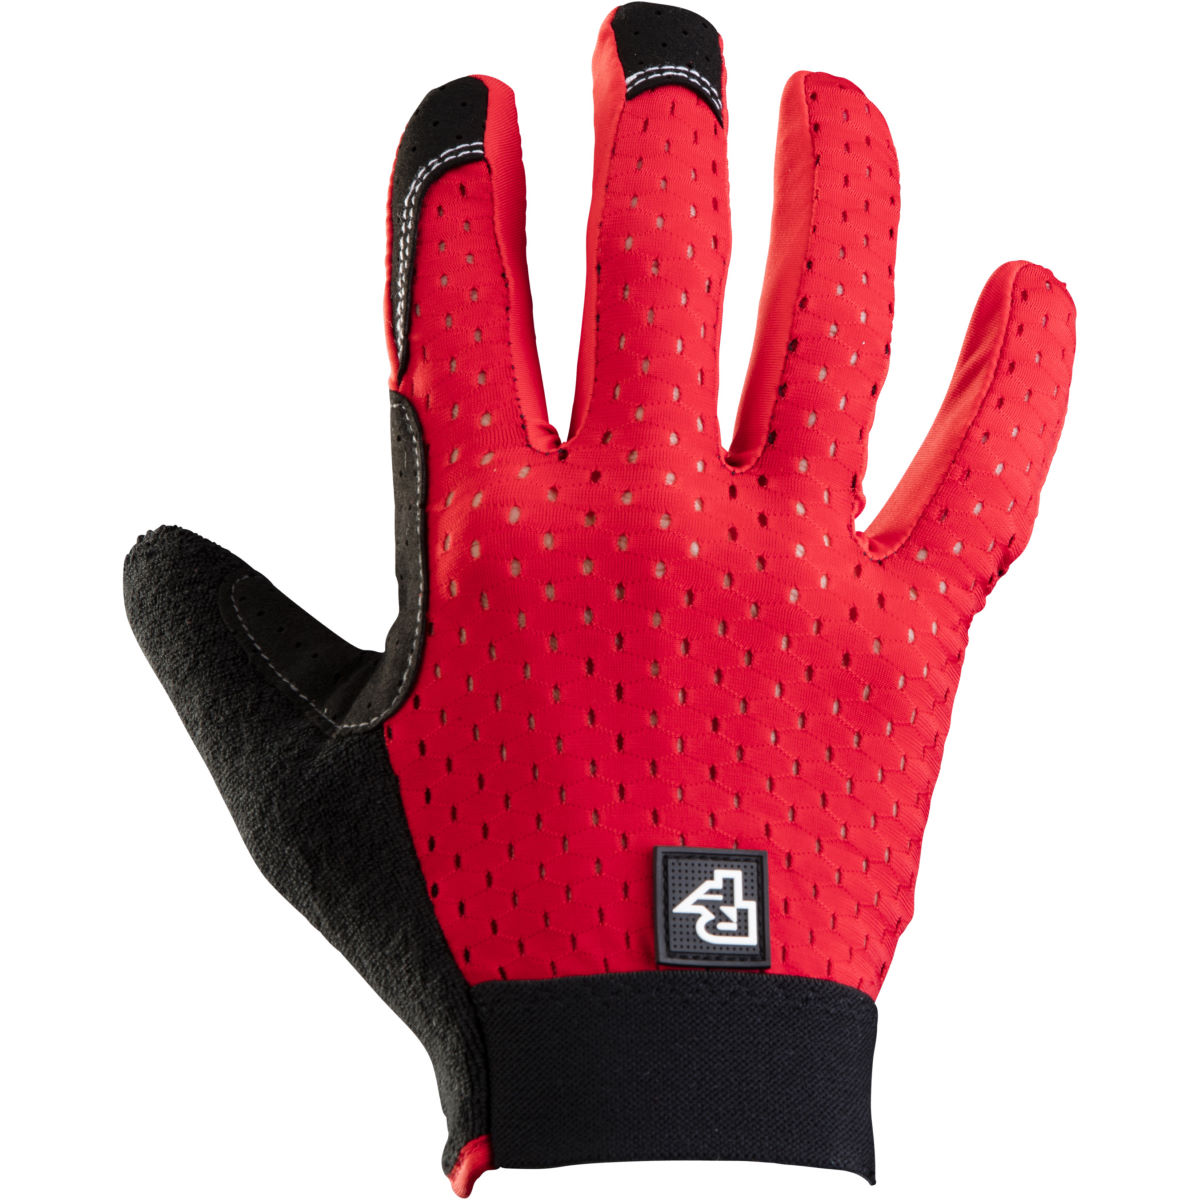 Gants Race Face Stage - Small Flame Gants à doigts longs